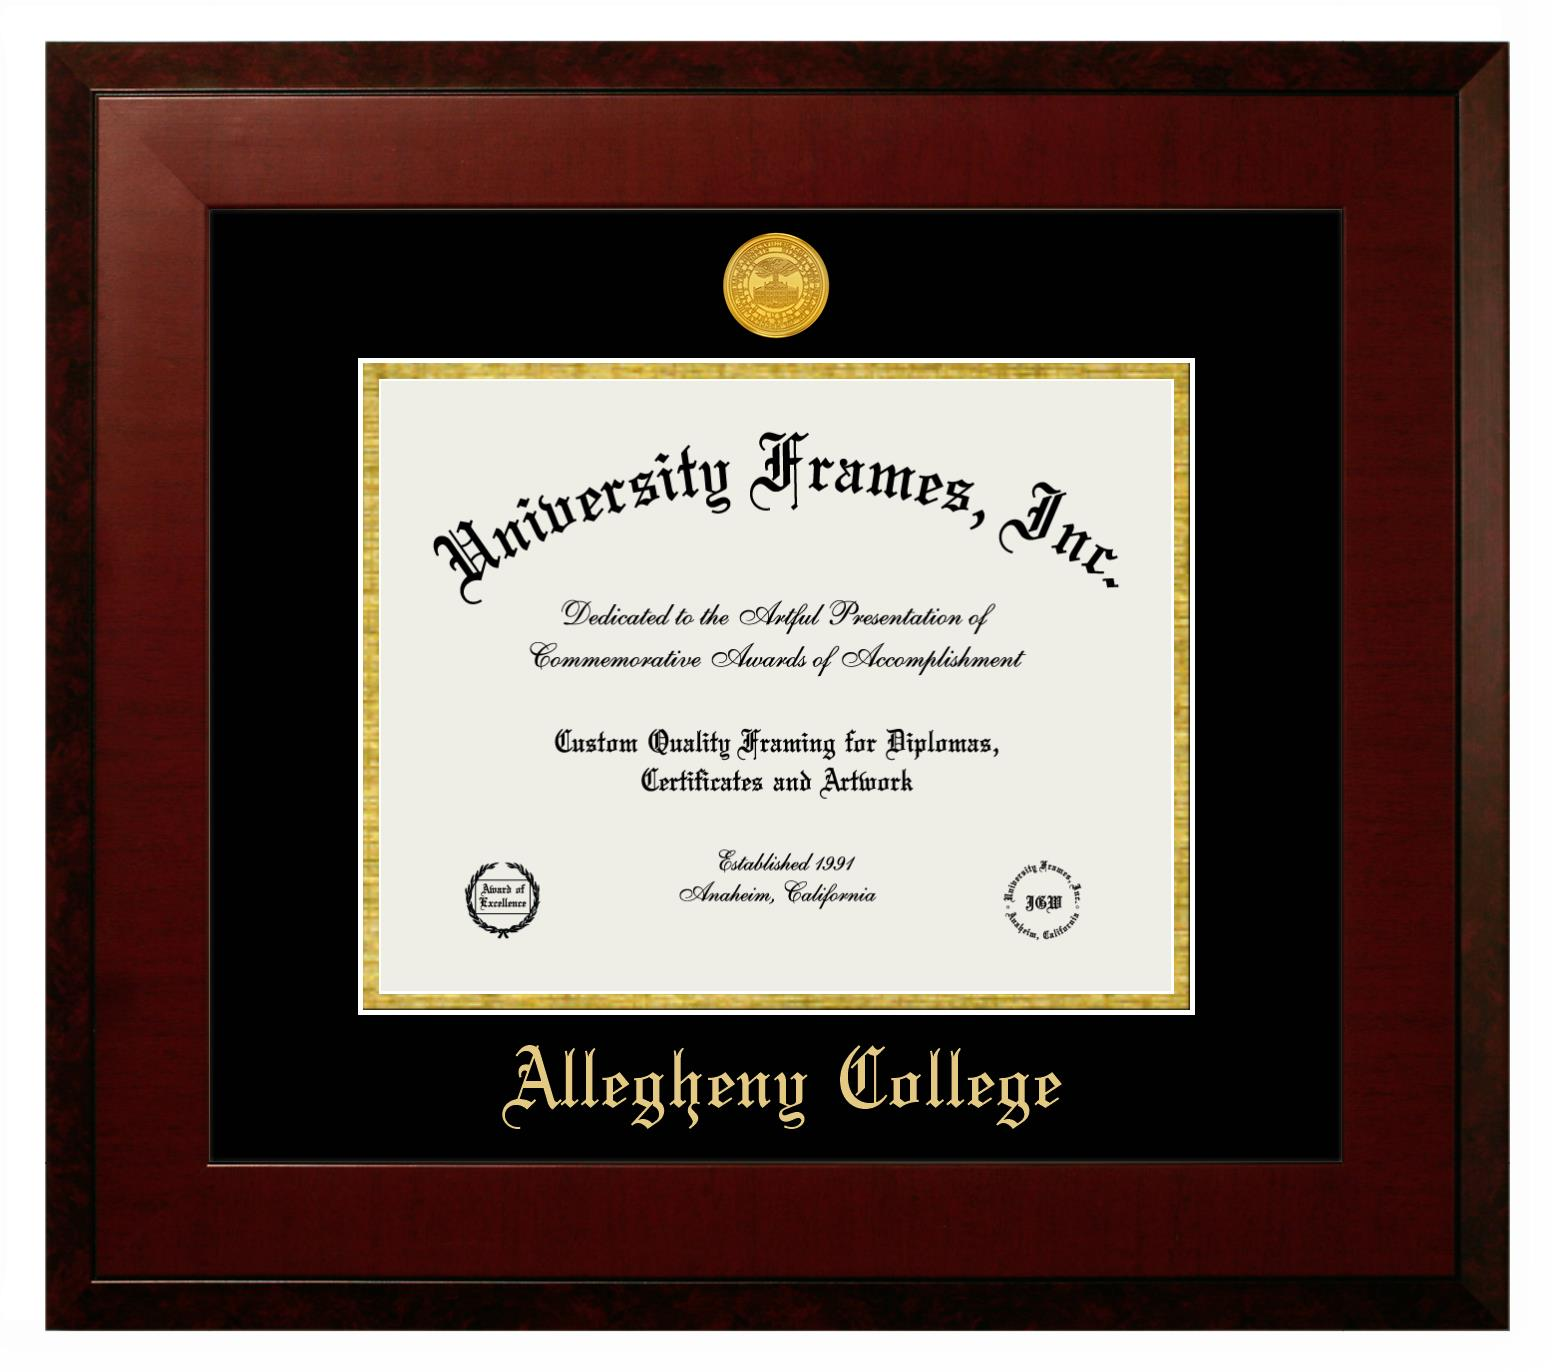 "Allegheny College Allegheny College Diploma Frame in Honors Mahogany with Black & Gold Mats for DOCUMENT: 8 1/2""H X 11""W"